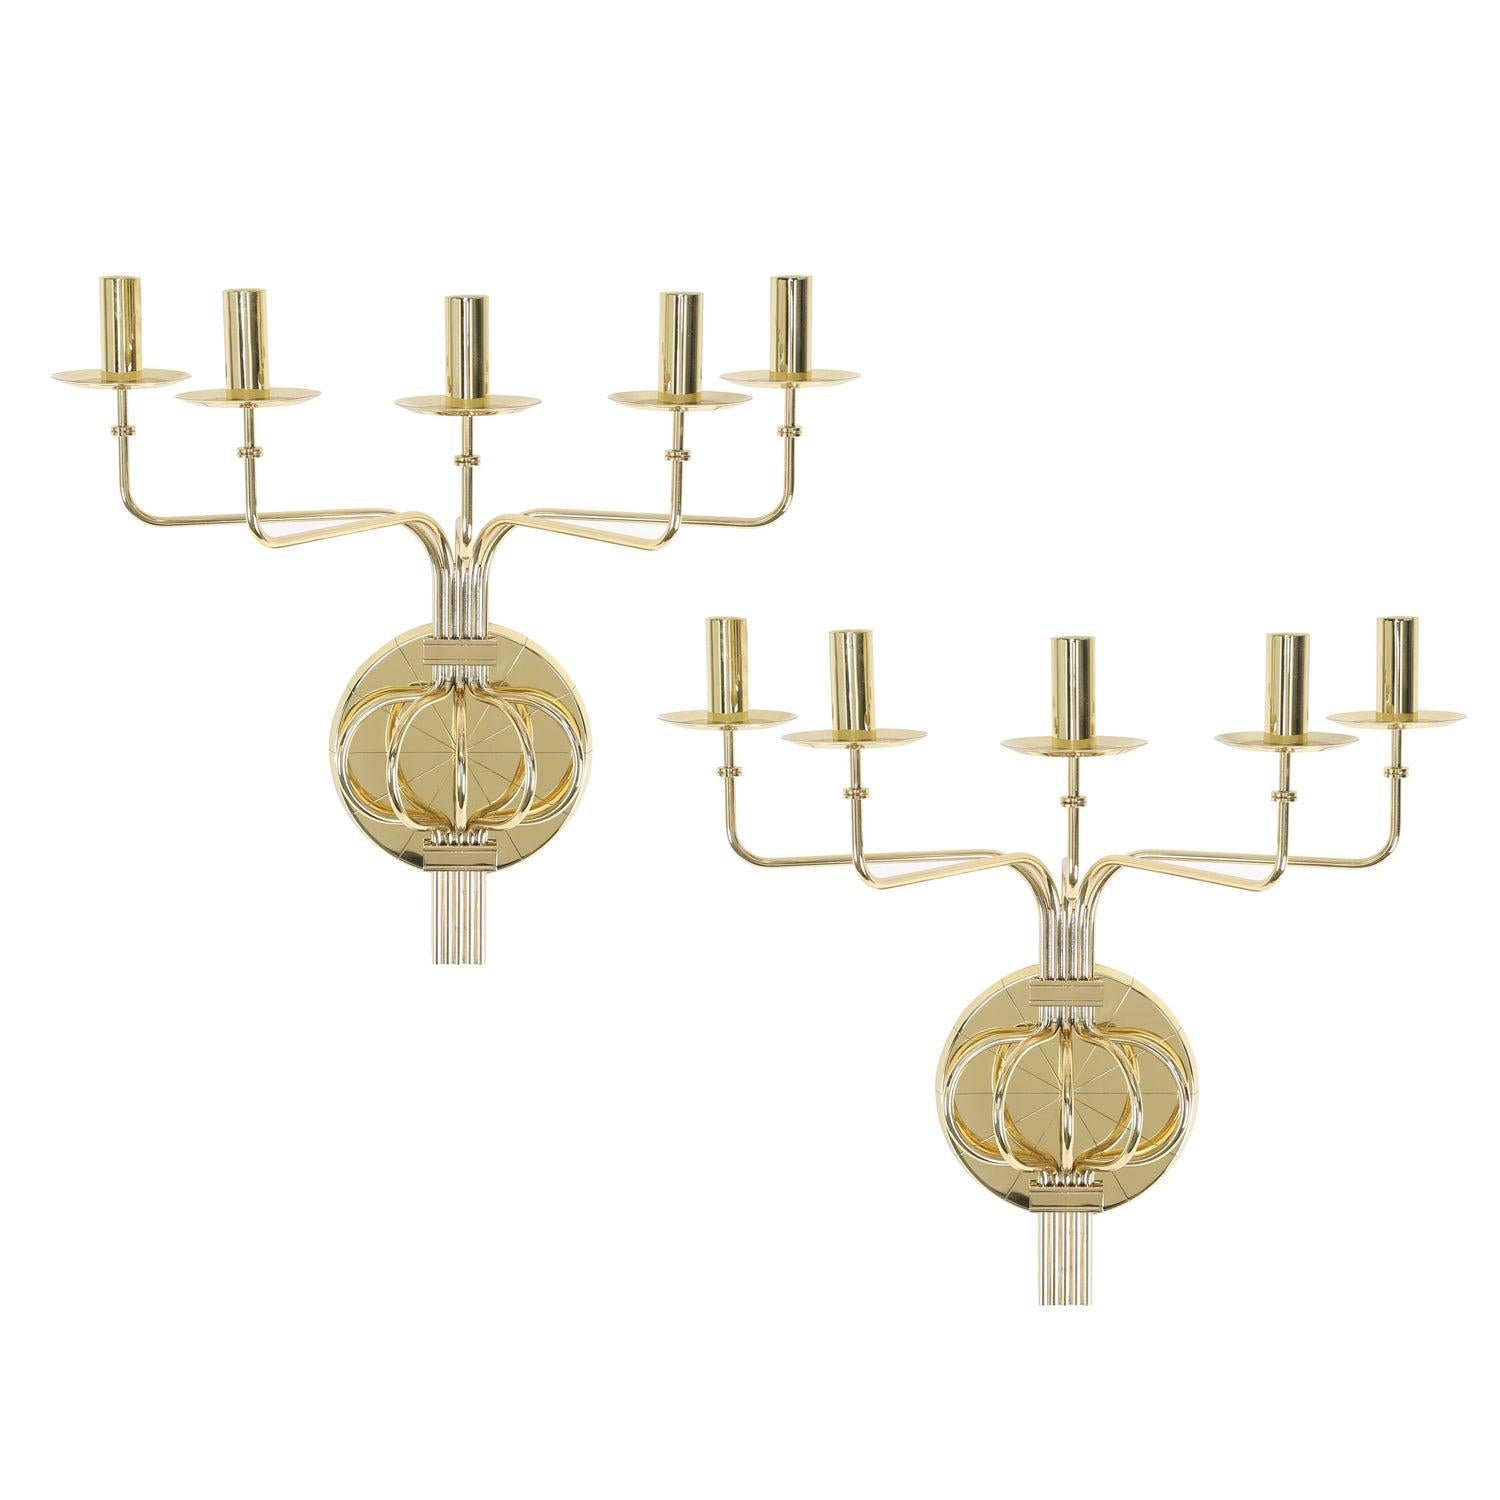 Tommi Parzinger Pair of Impressive 5 Arm Wall Sconces in Polished Brass, 1950s